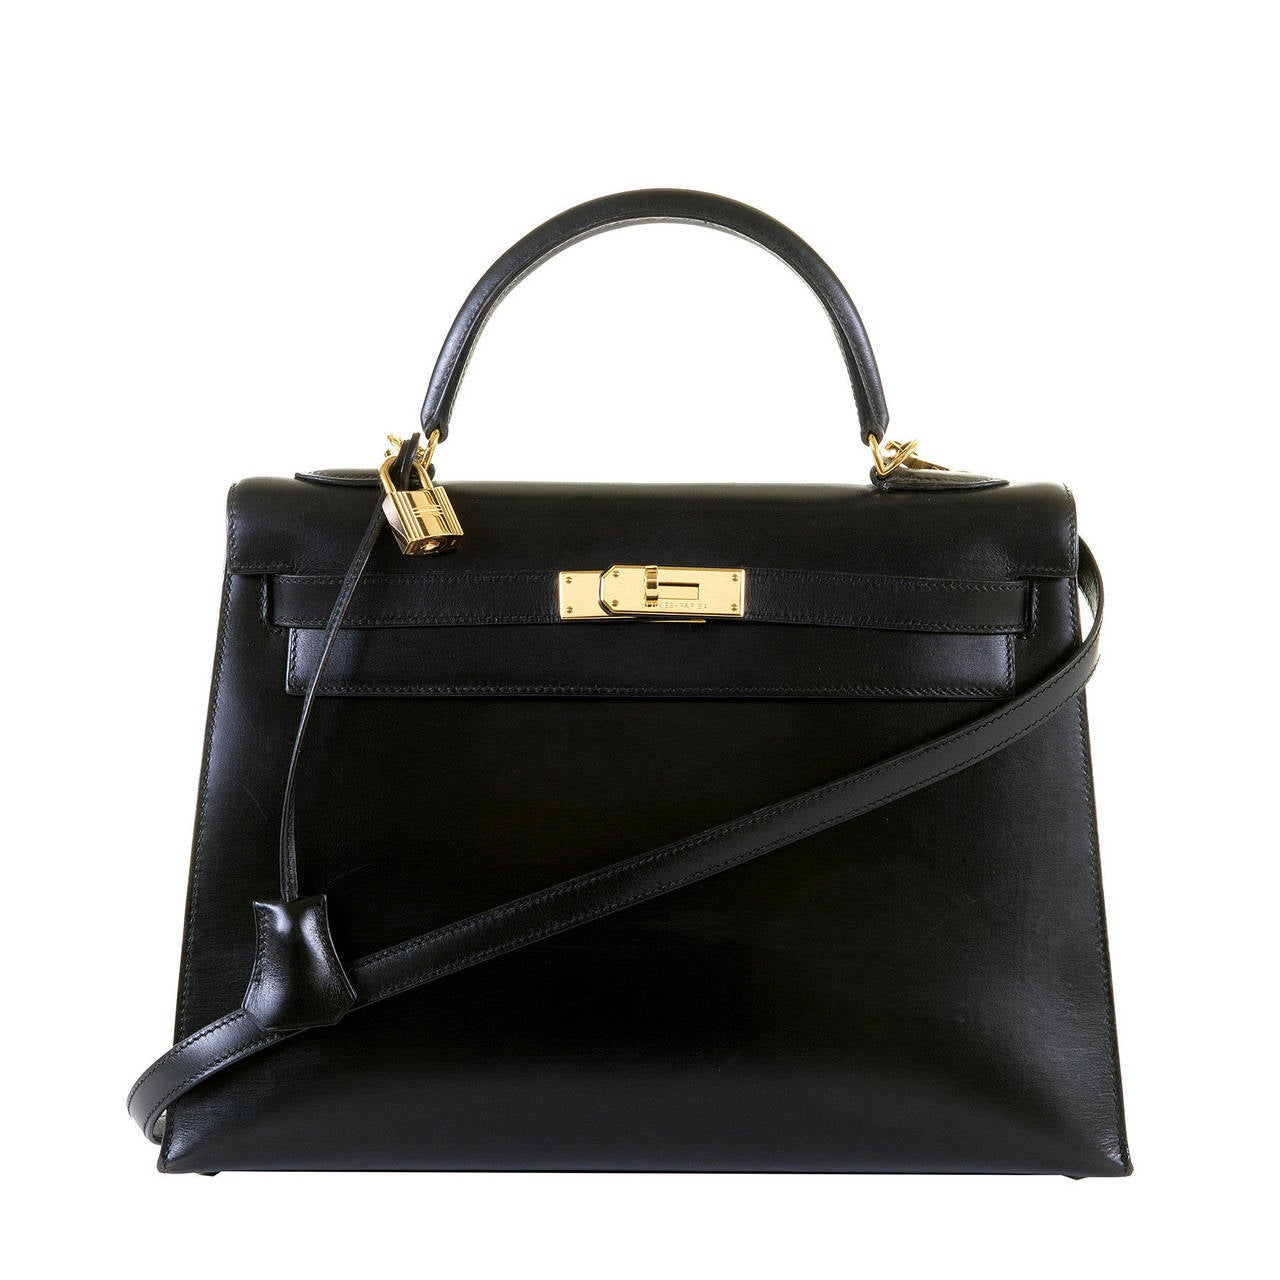 replica birkin handbags - PRISTINE Hermes Kelly 33cm 'Sellier' Bag in Black Box Leather with ...